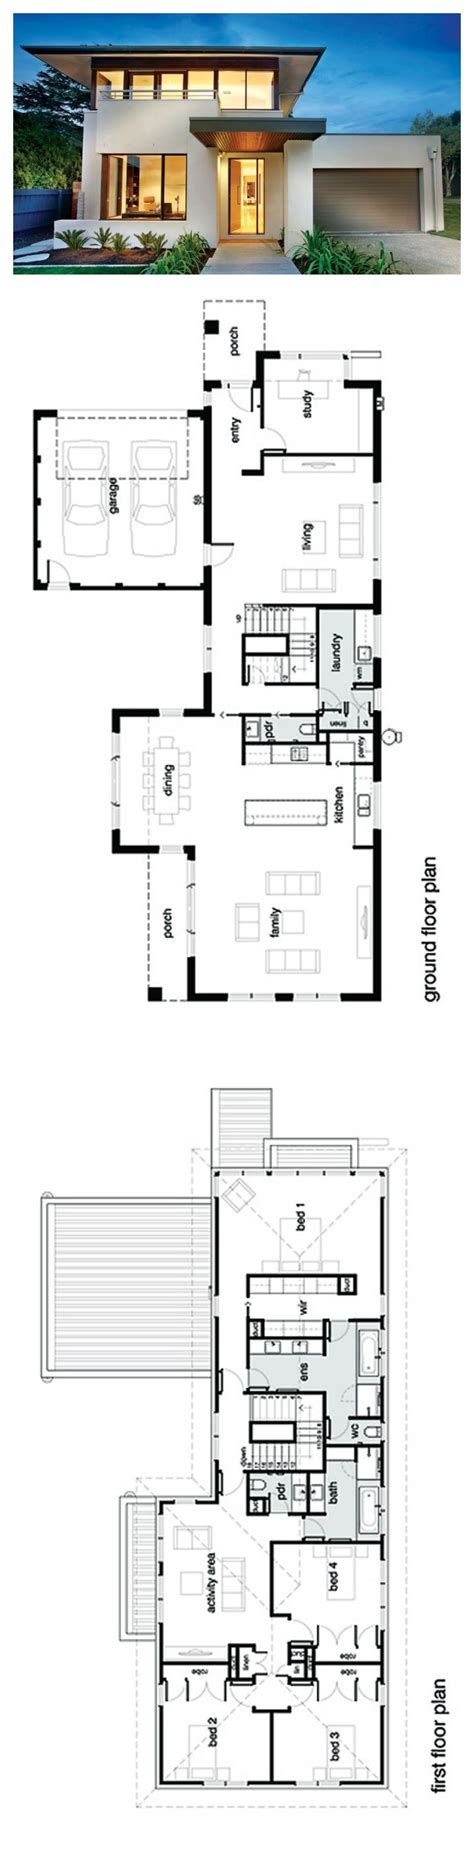 home plans modern the 25 best ideas about modern house plans on pinterest